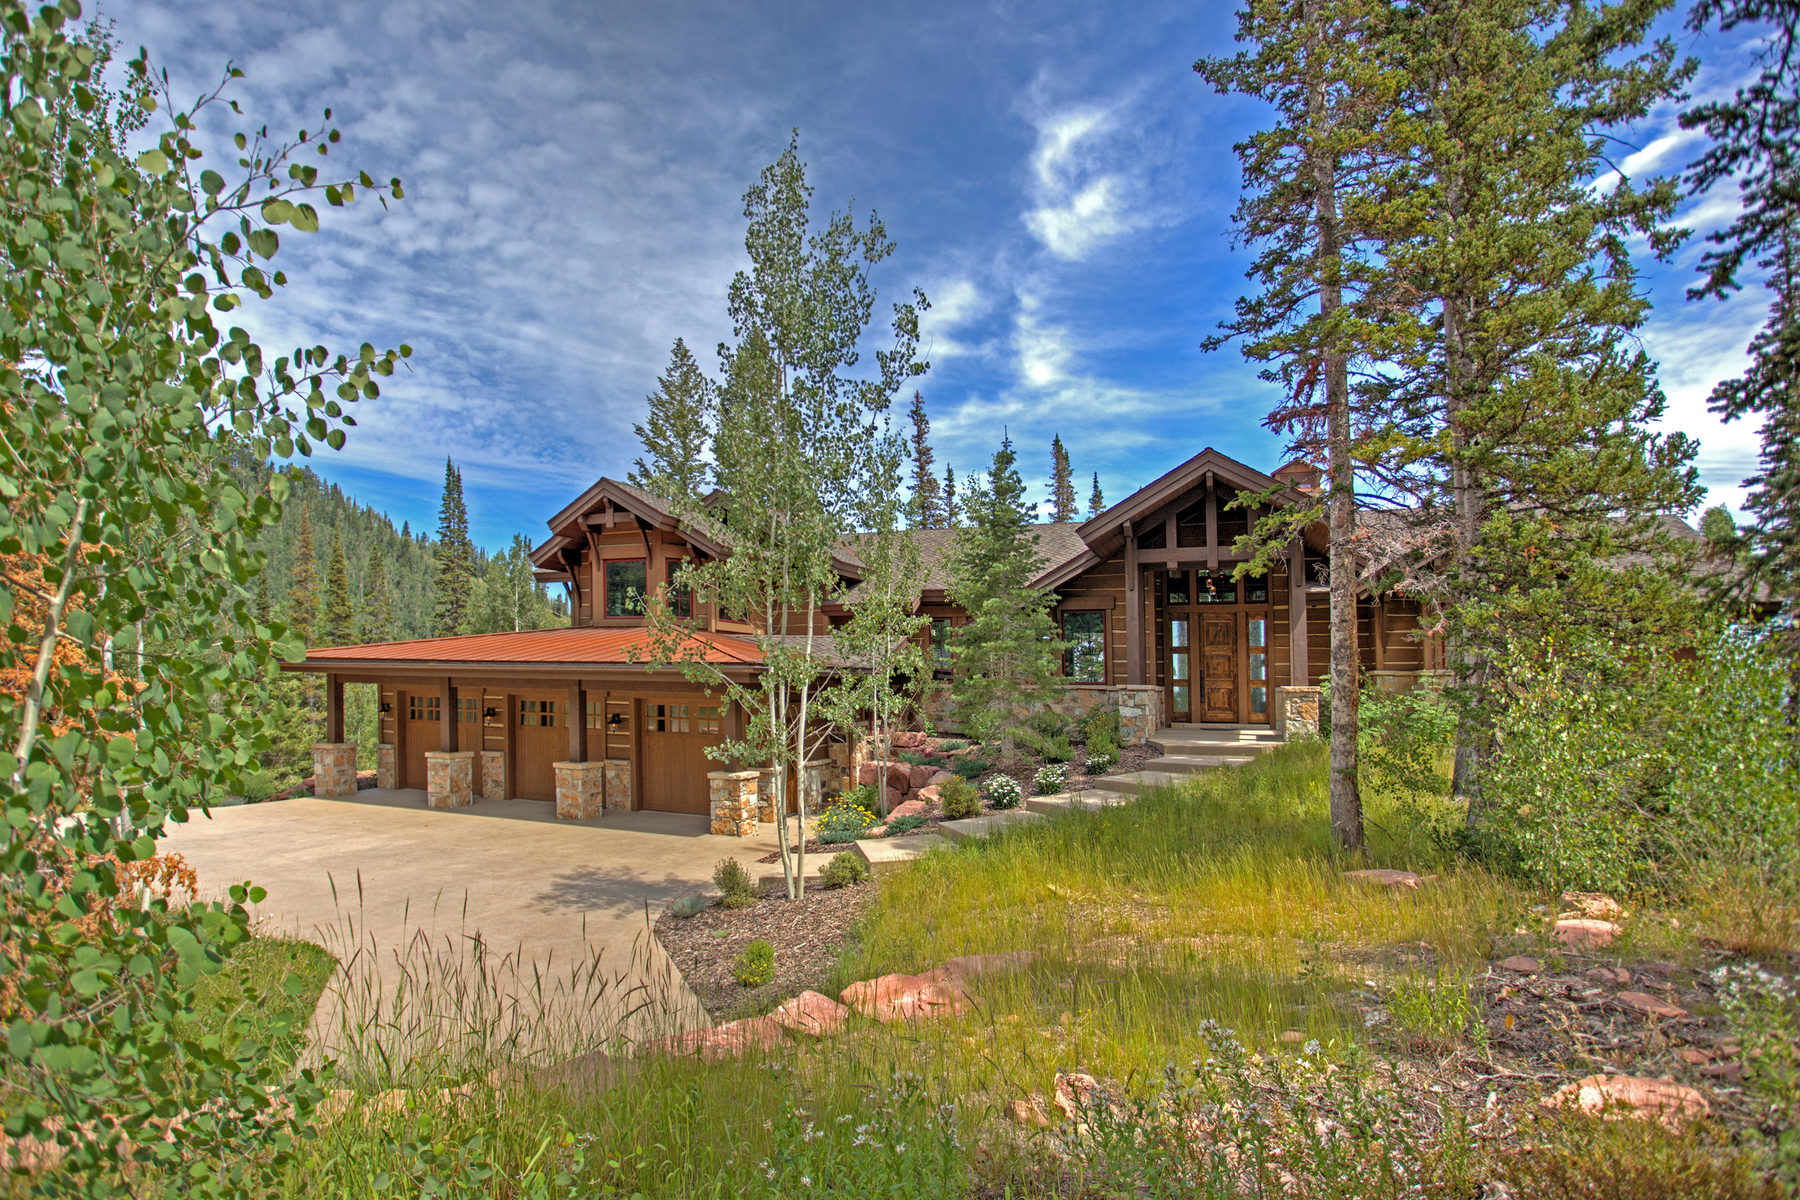 Moradia para Venda às Top of the Mountain Retreat 137 White Pine Canyon Rd Lot 130 Park City, Utah 84098 Estados Unidos